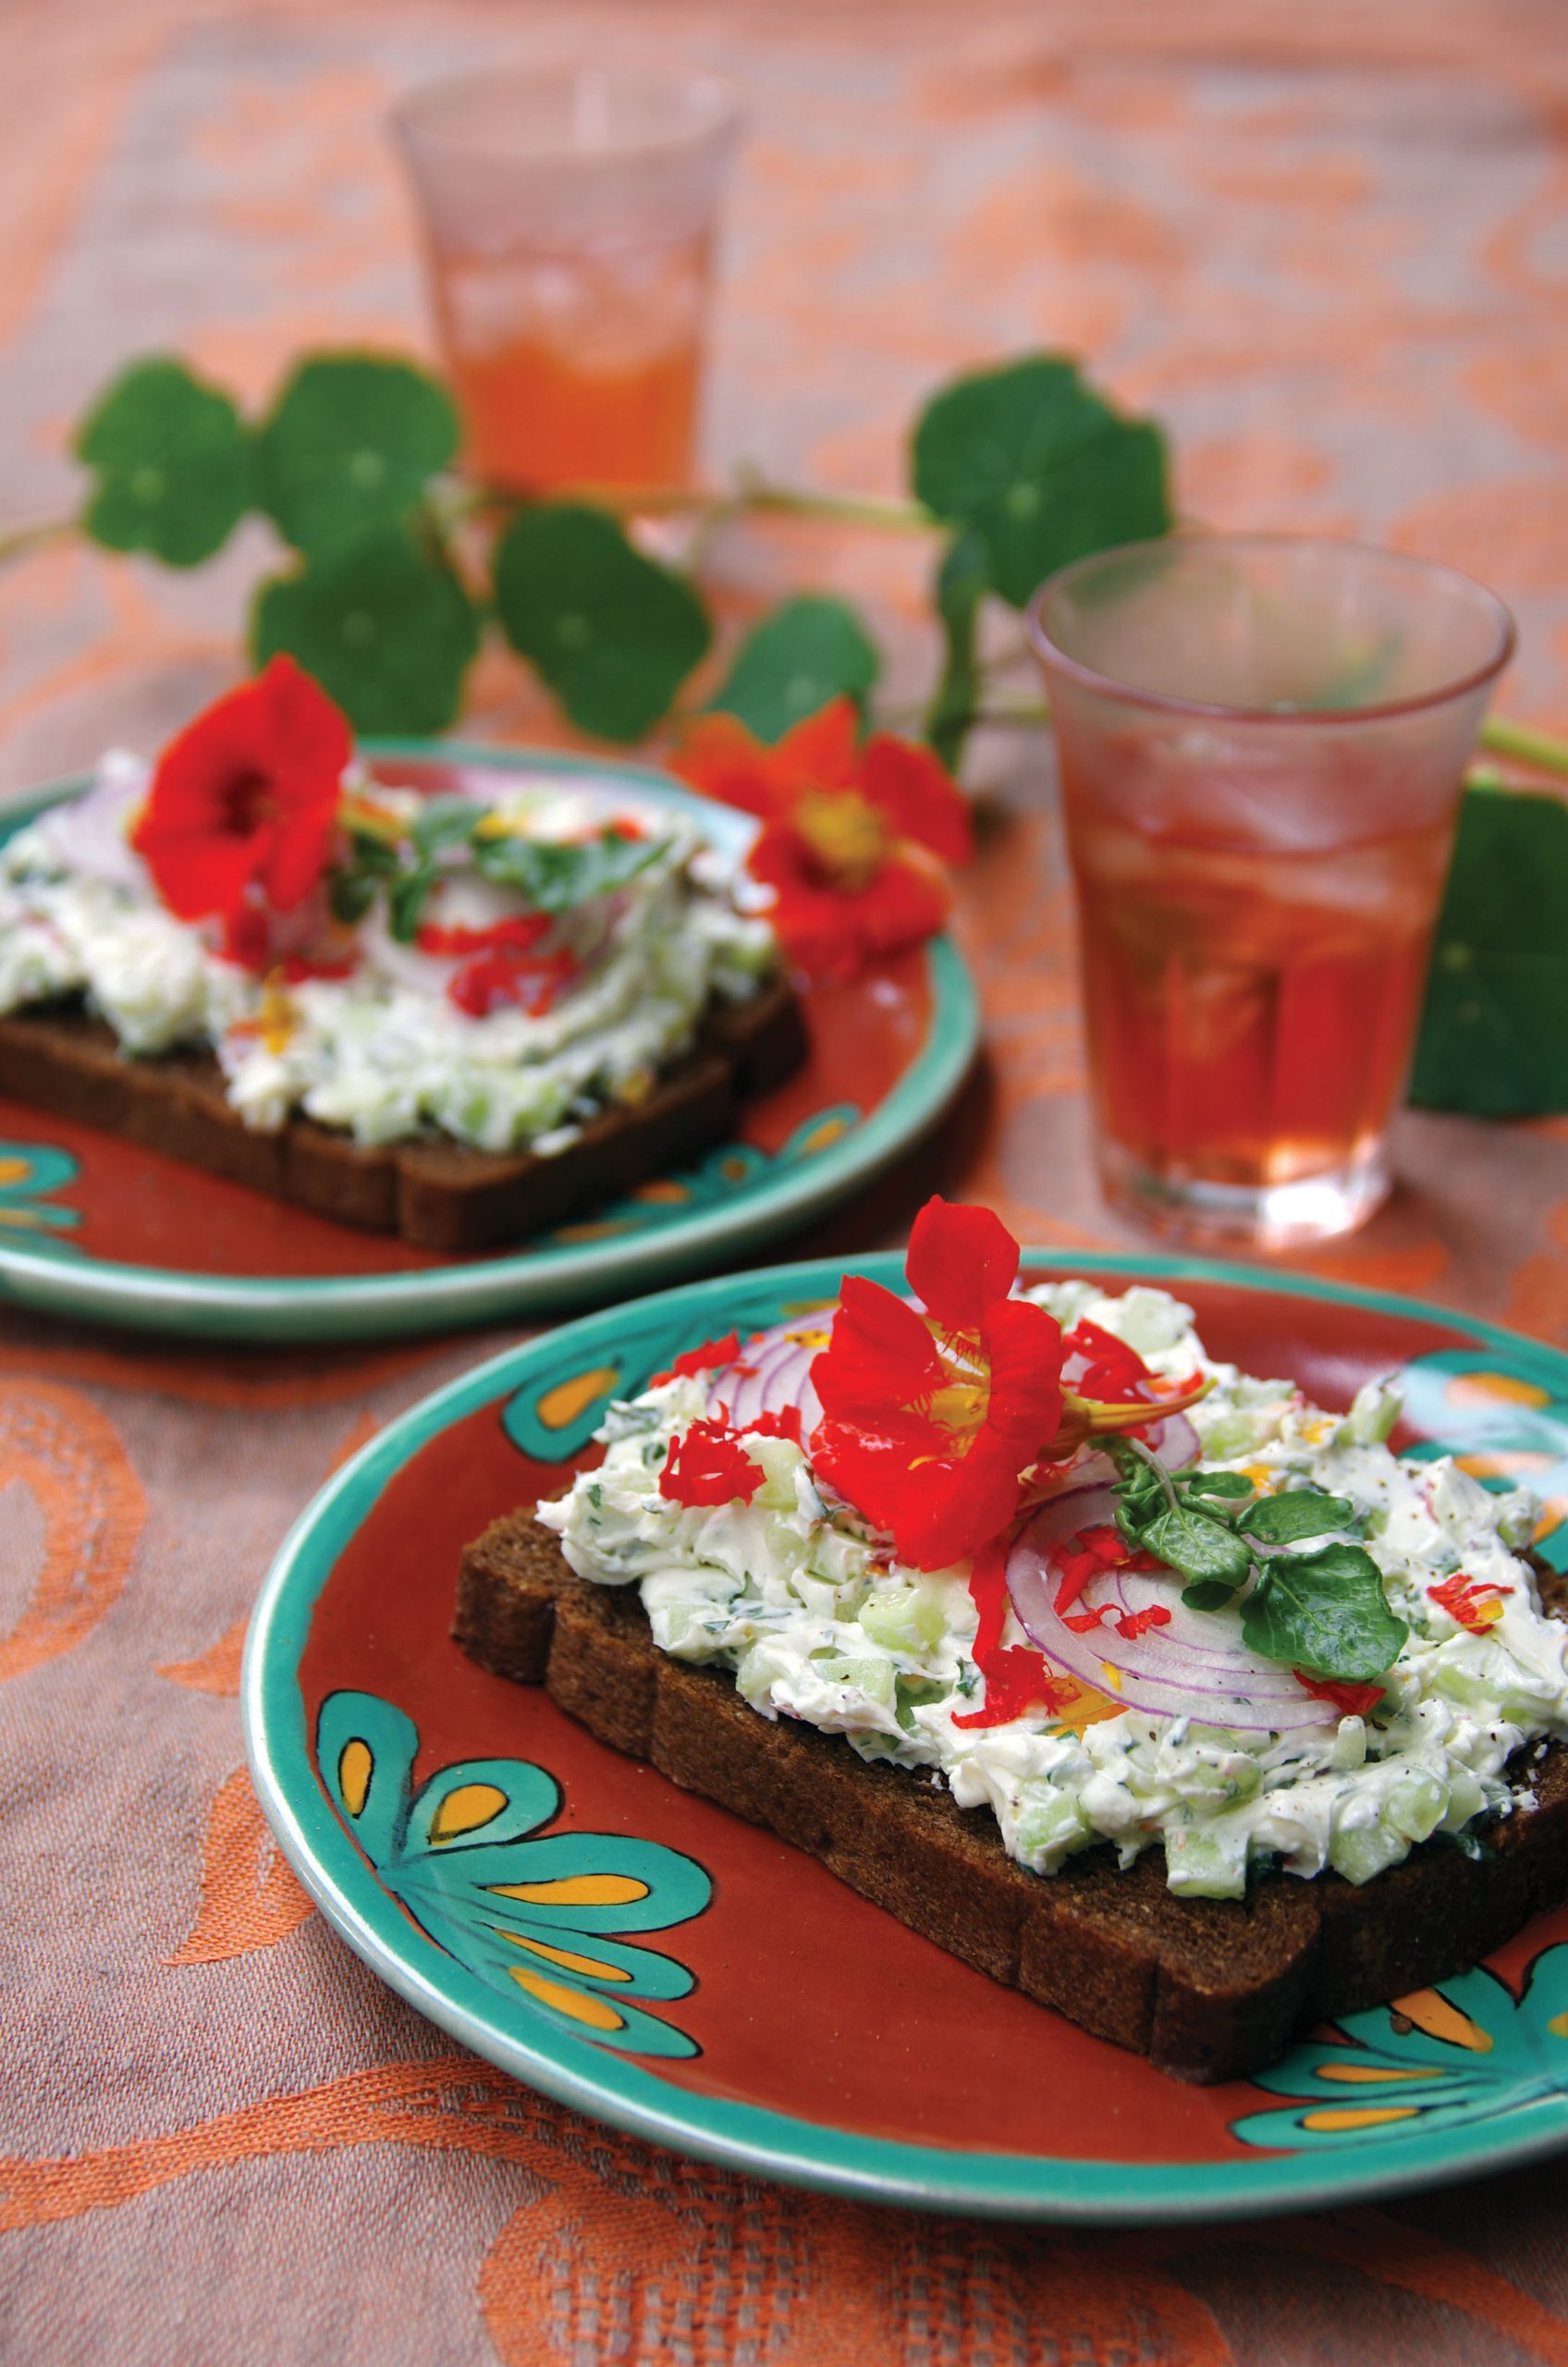 Open-faced Watercress Sandwiches with nasturtium flowers